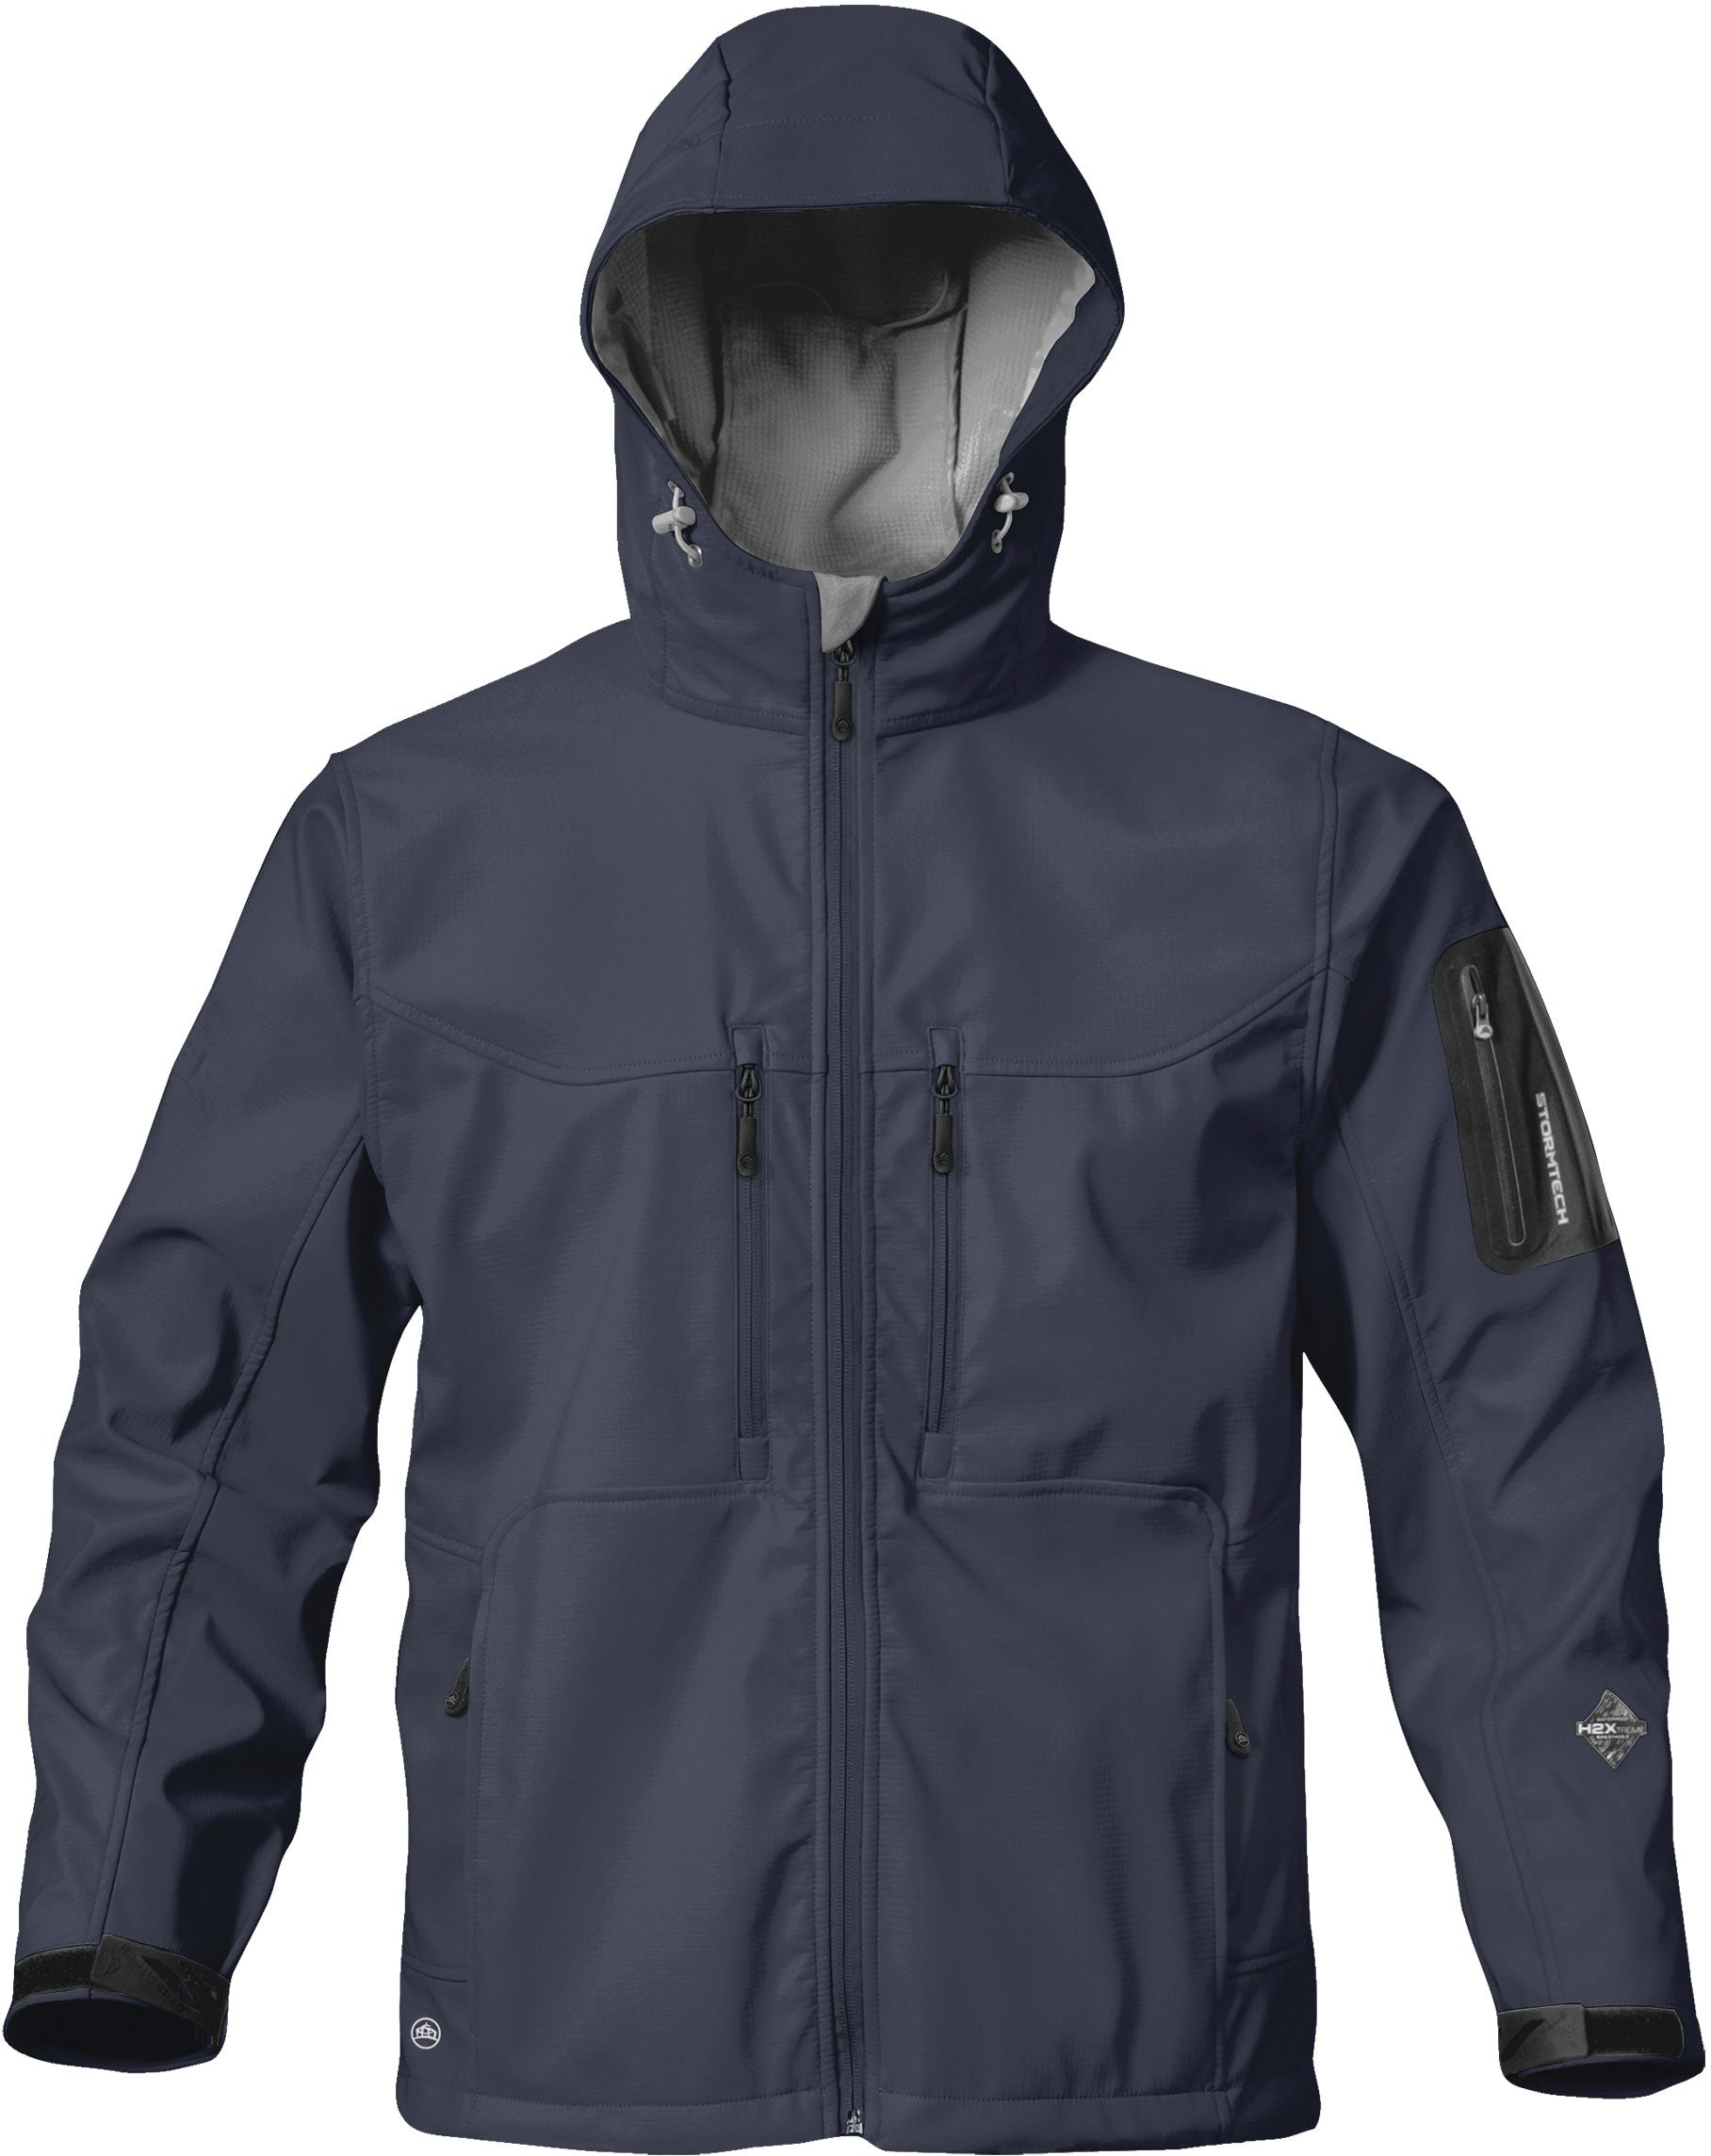 STORMTECH LADIES EPSILON H2XTREME SHELL JACKET